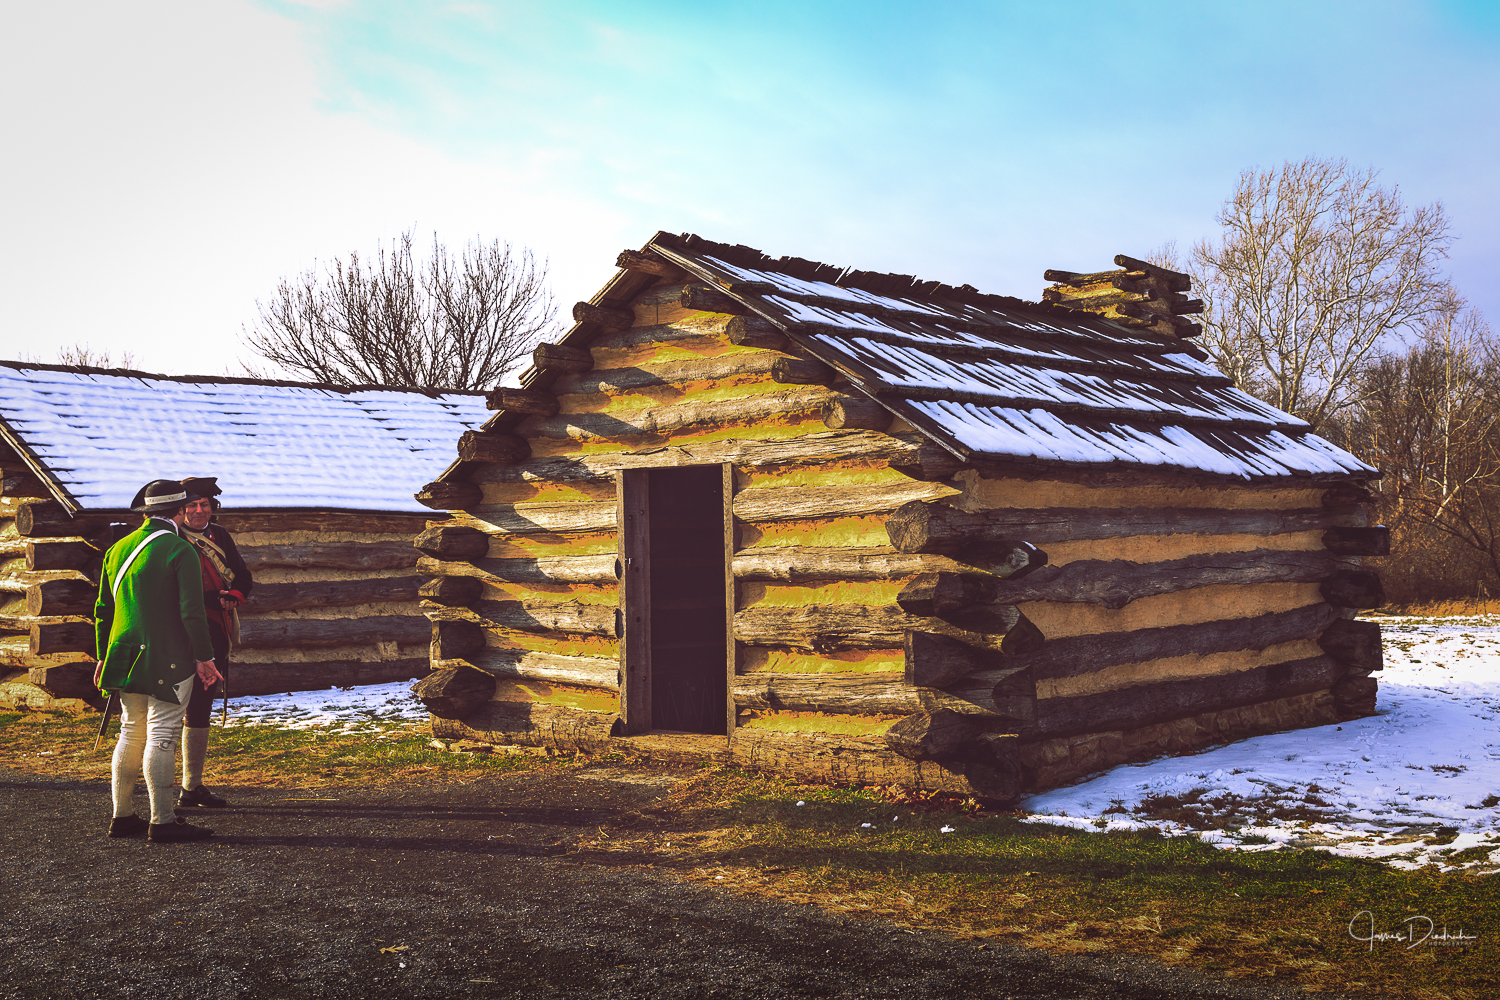 Here is a cabin which is what the soldiers stayed in.